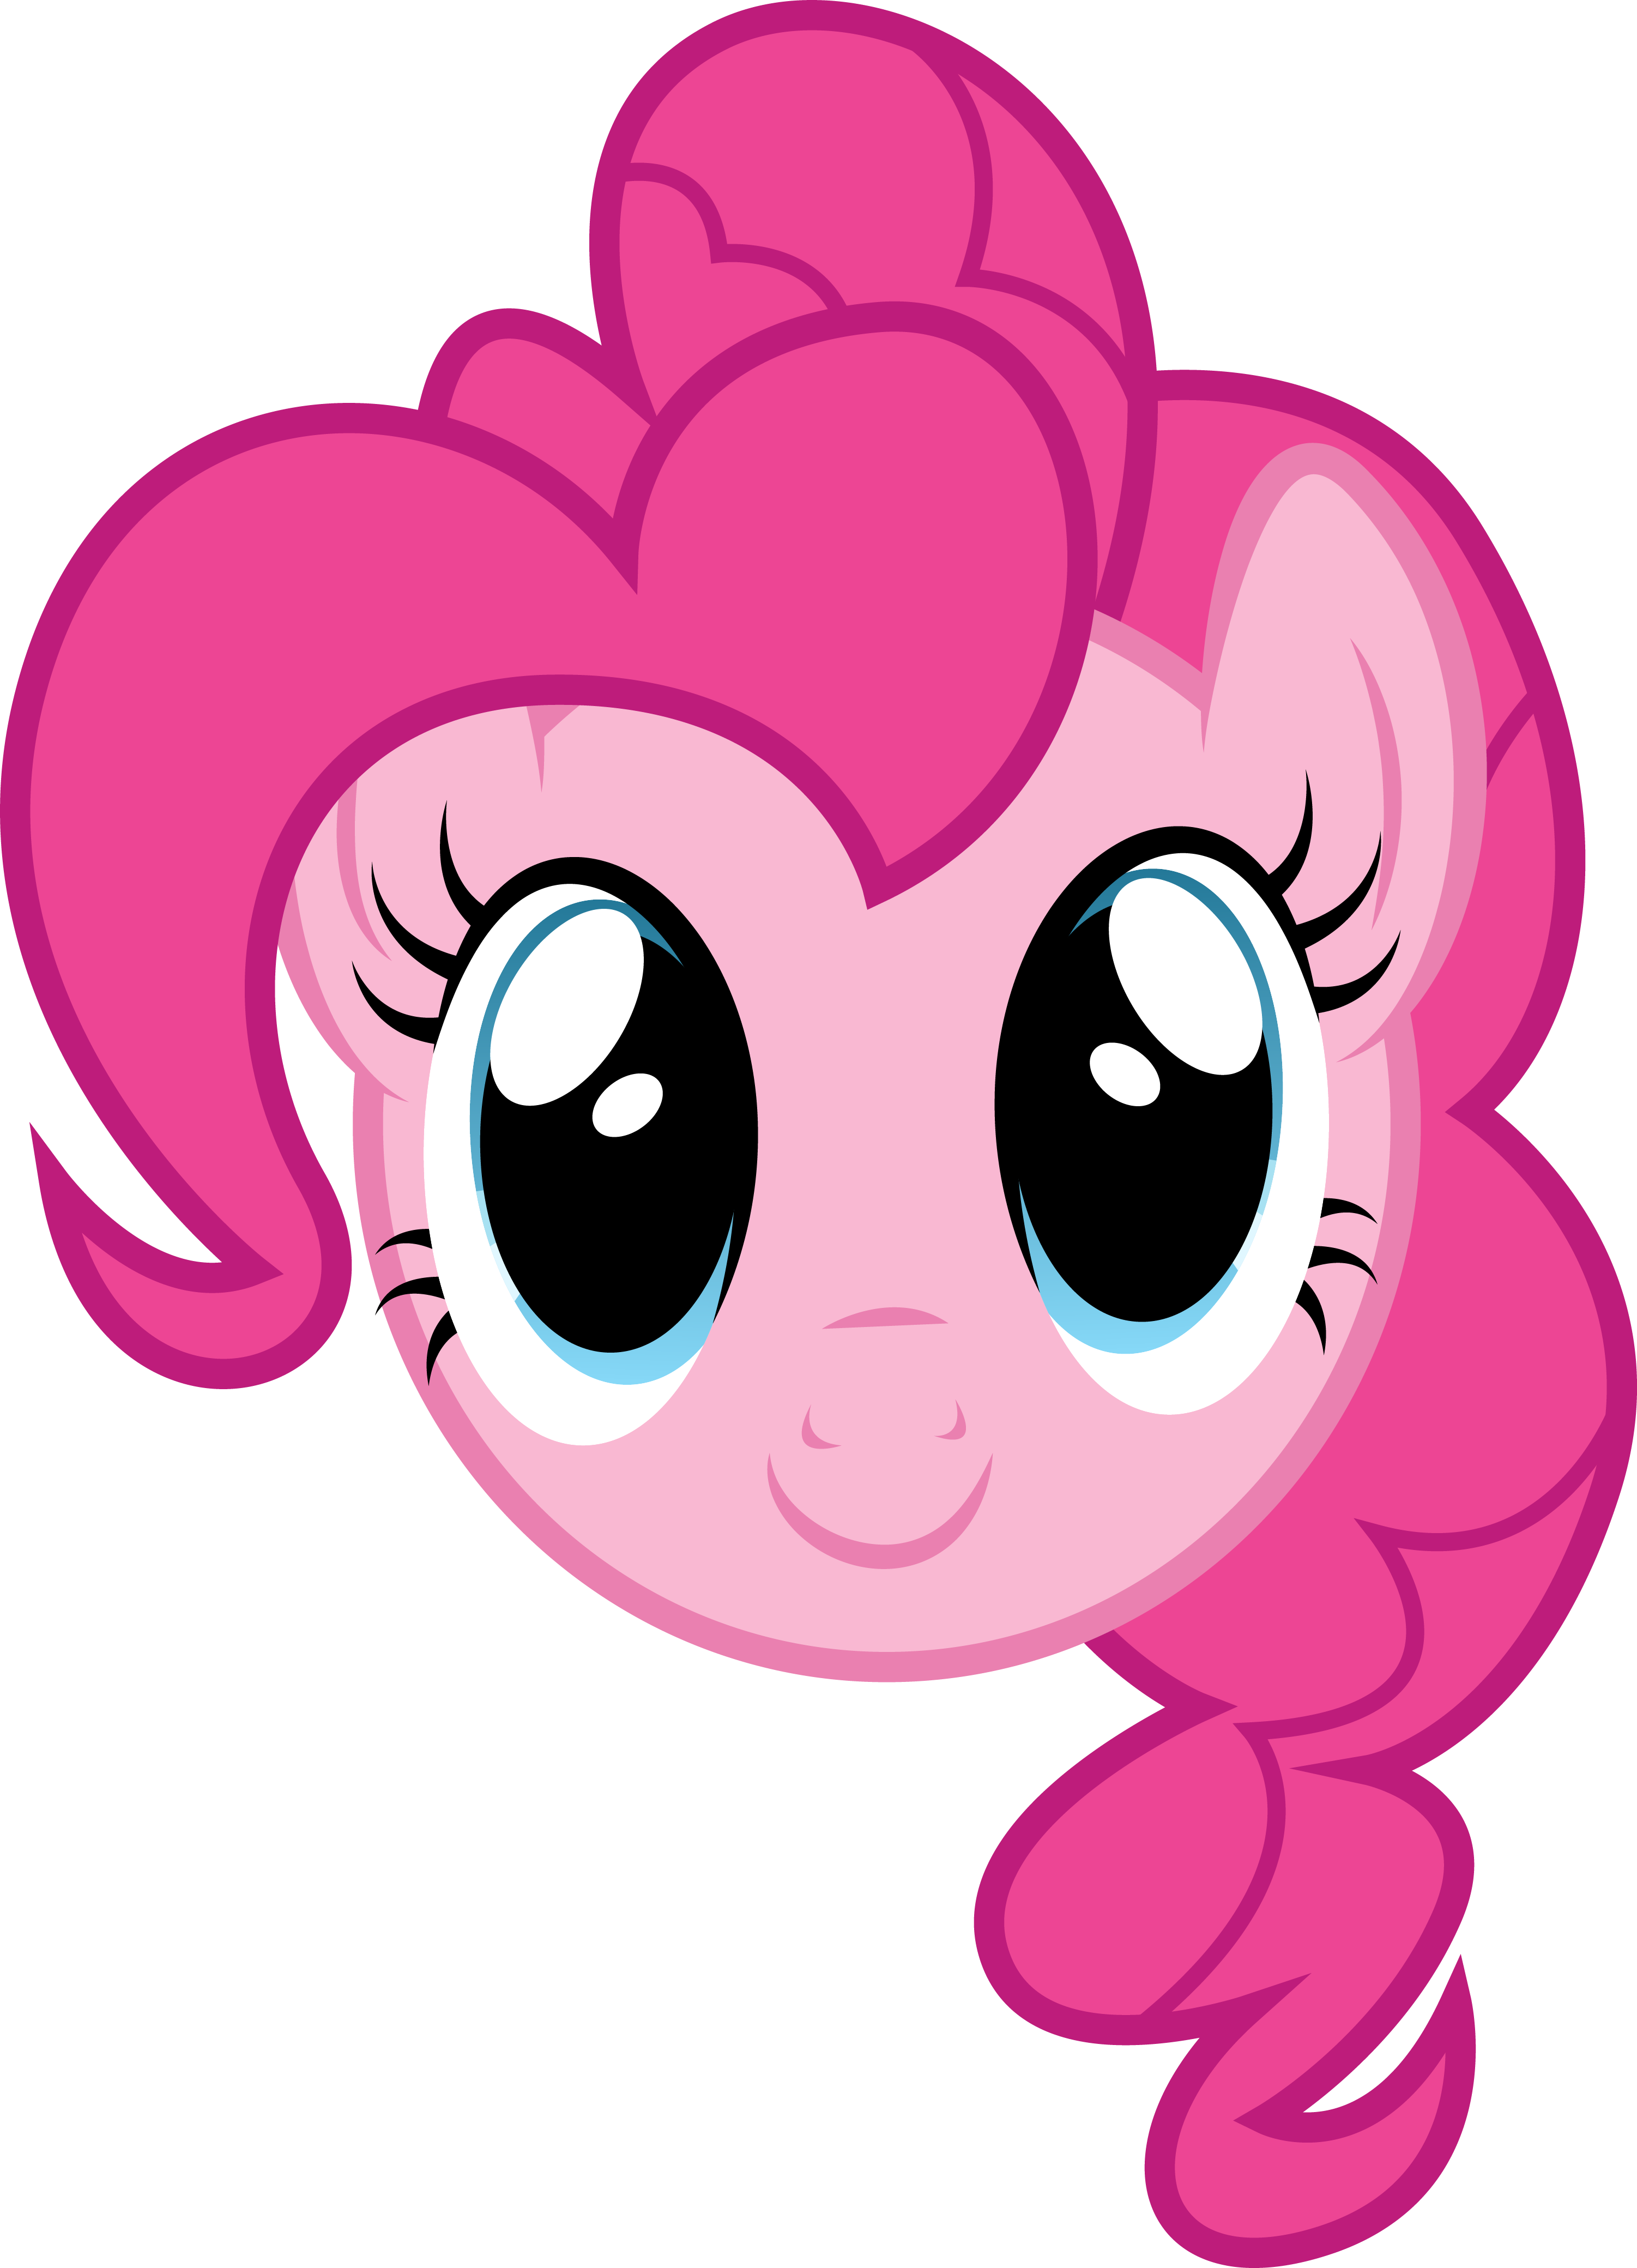 Pinkie Pie Face By PaulySentry On DeviantArt